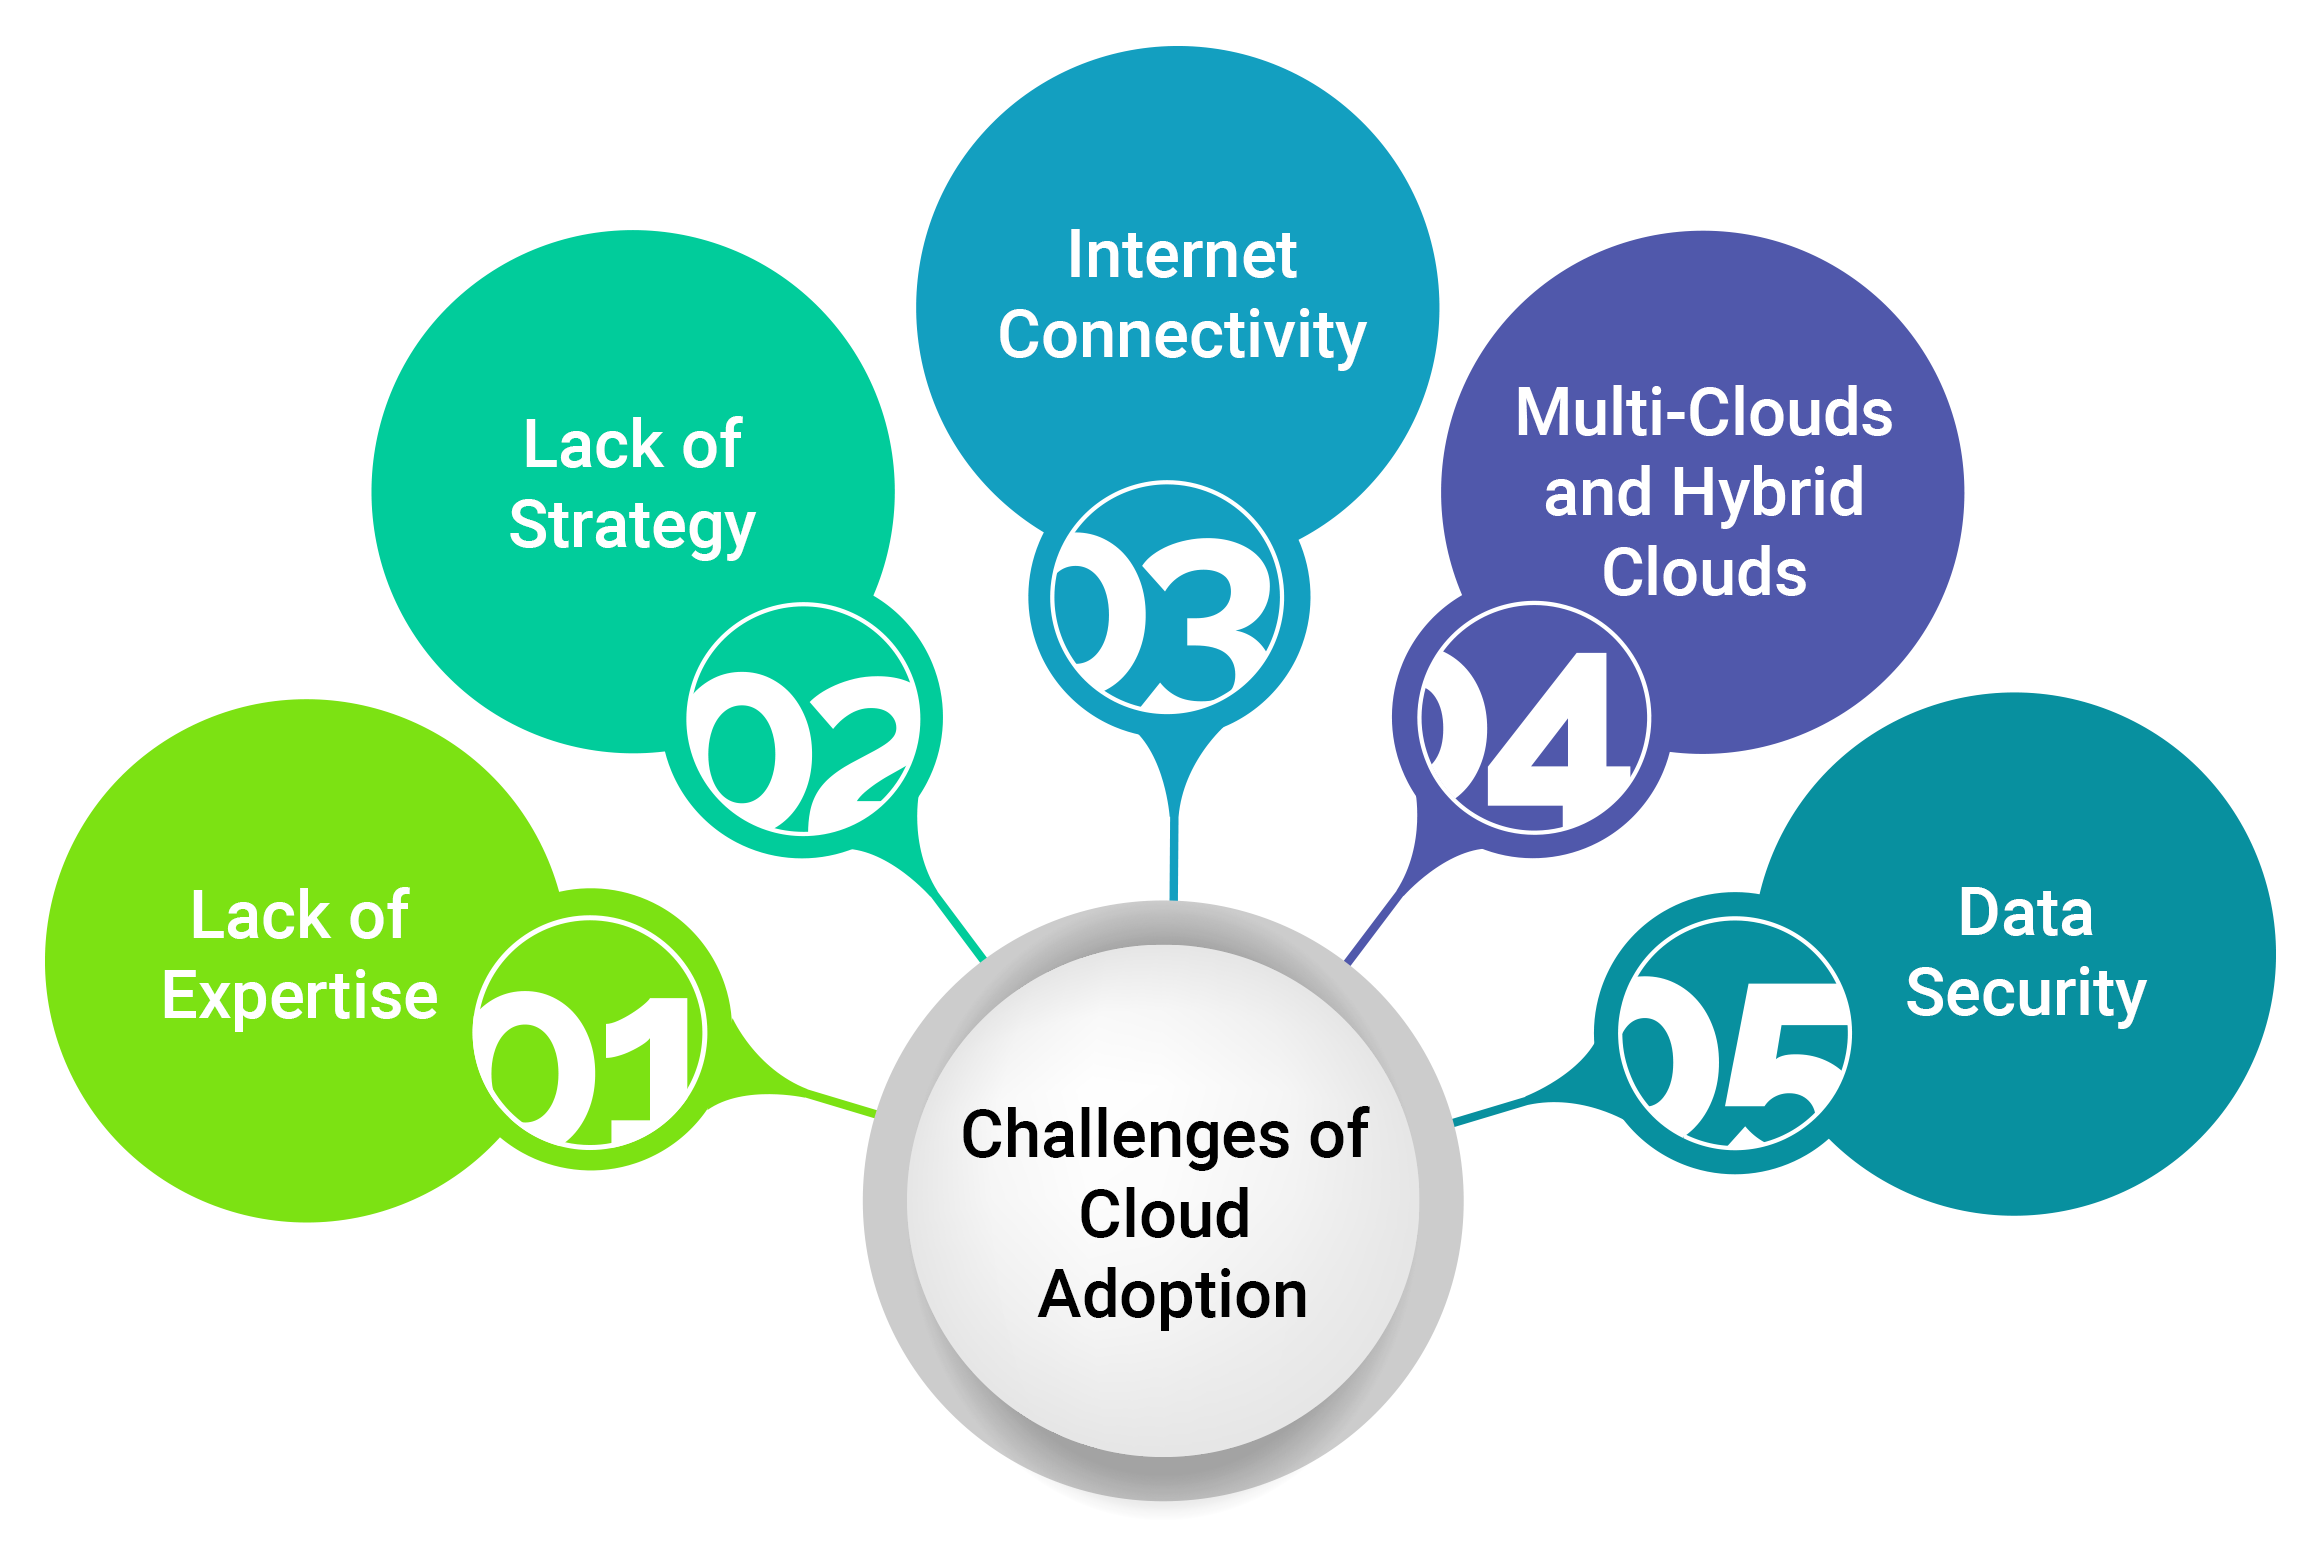 Challenges of cloud adoption